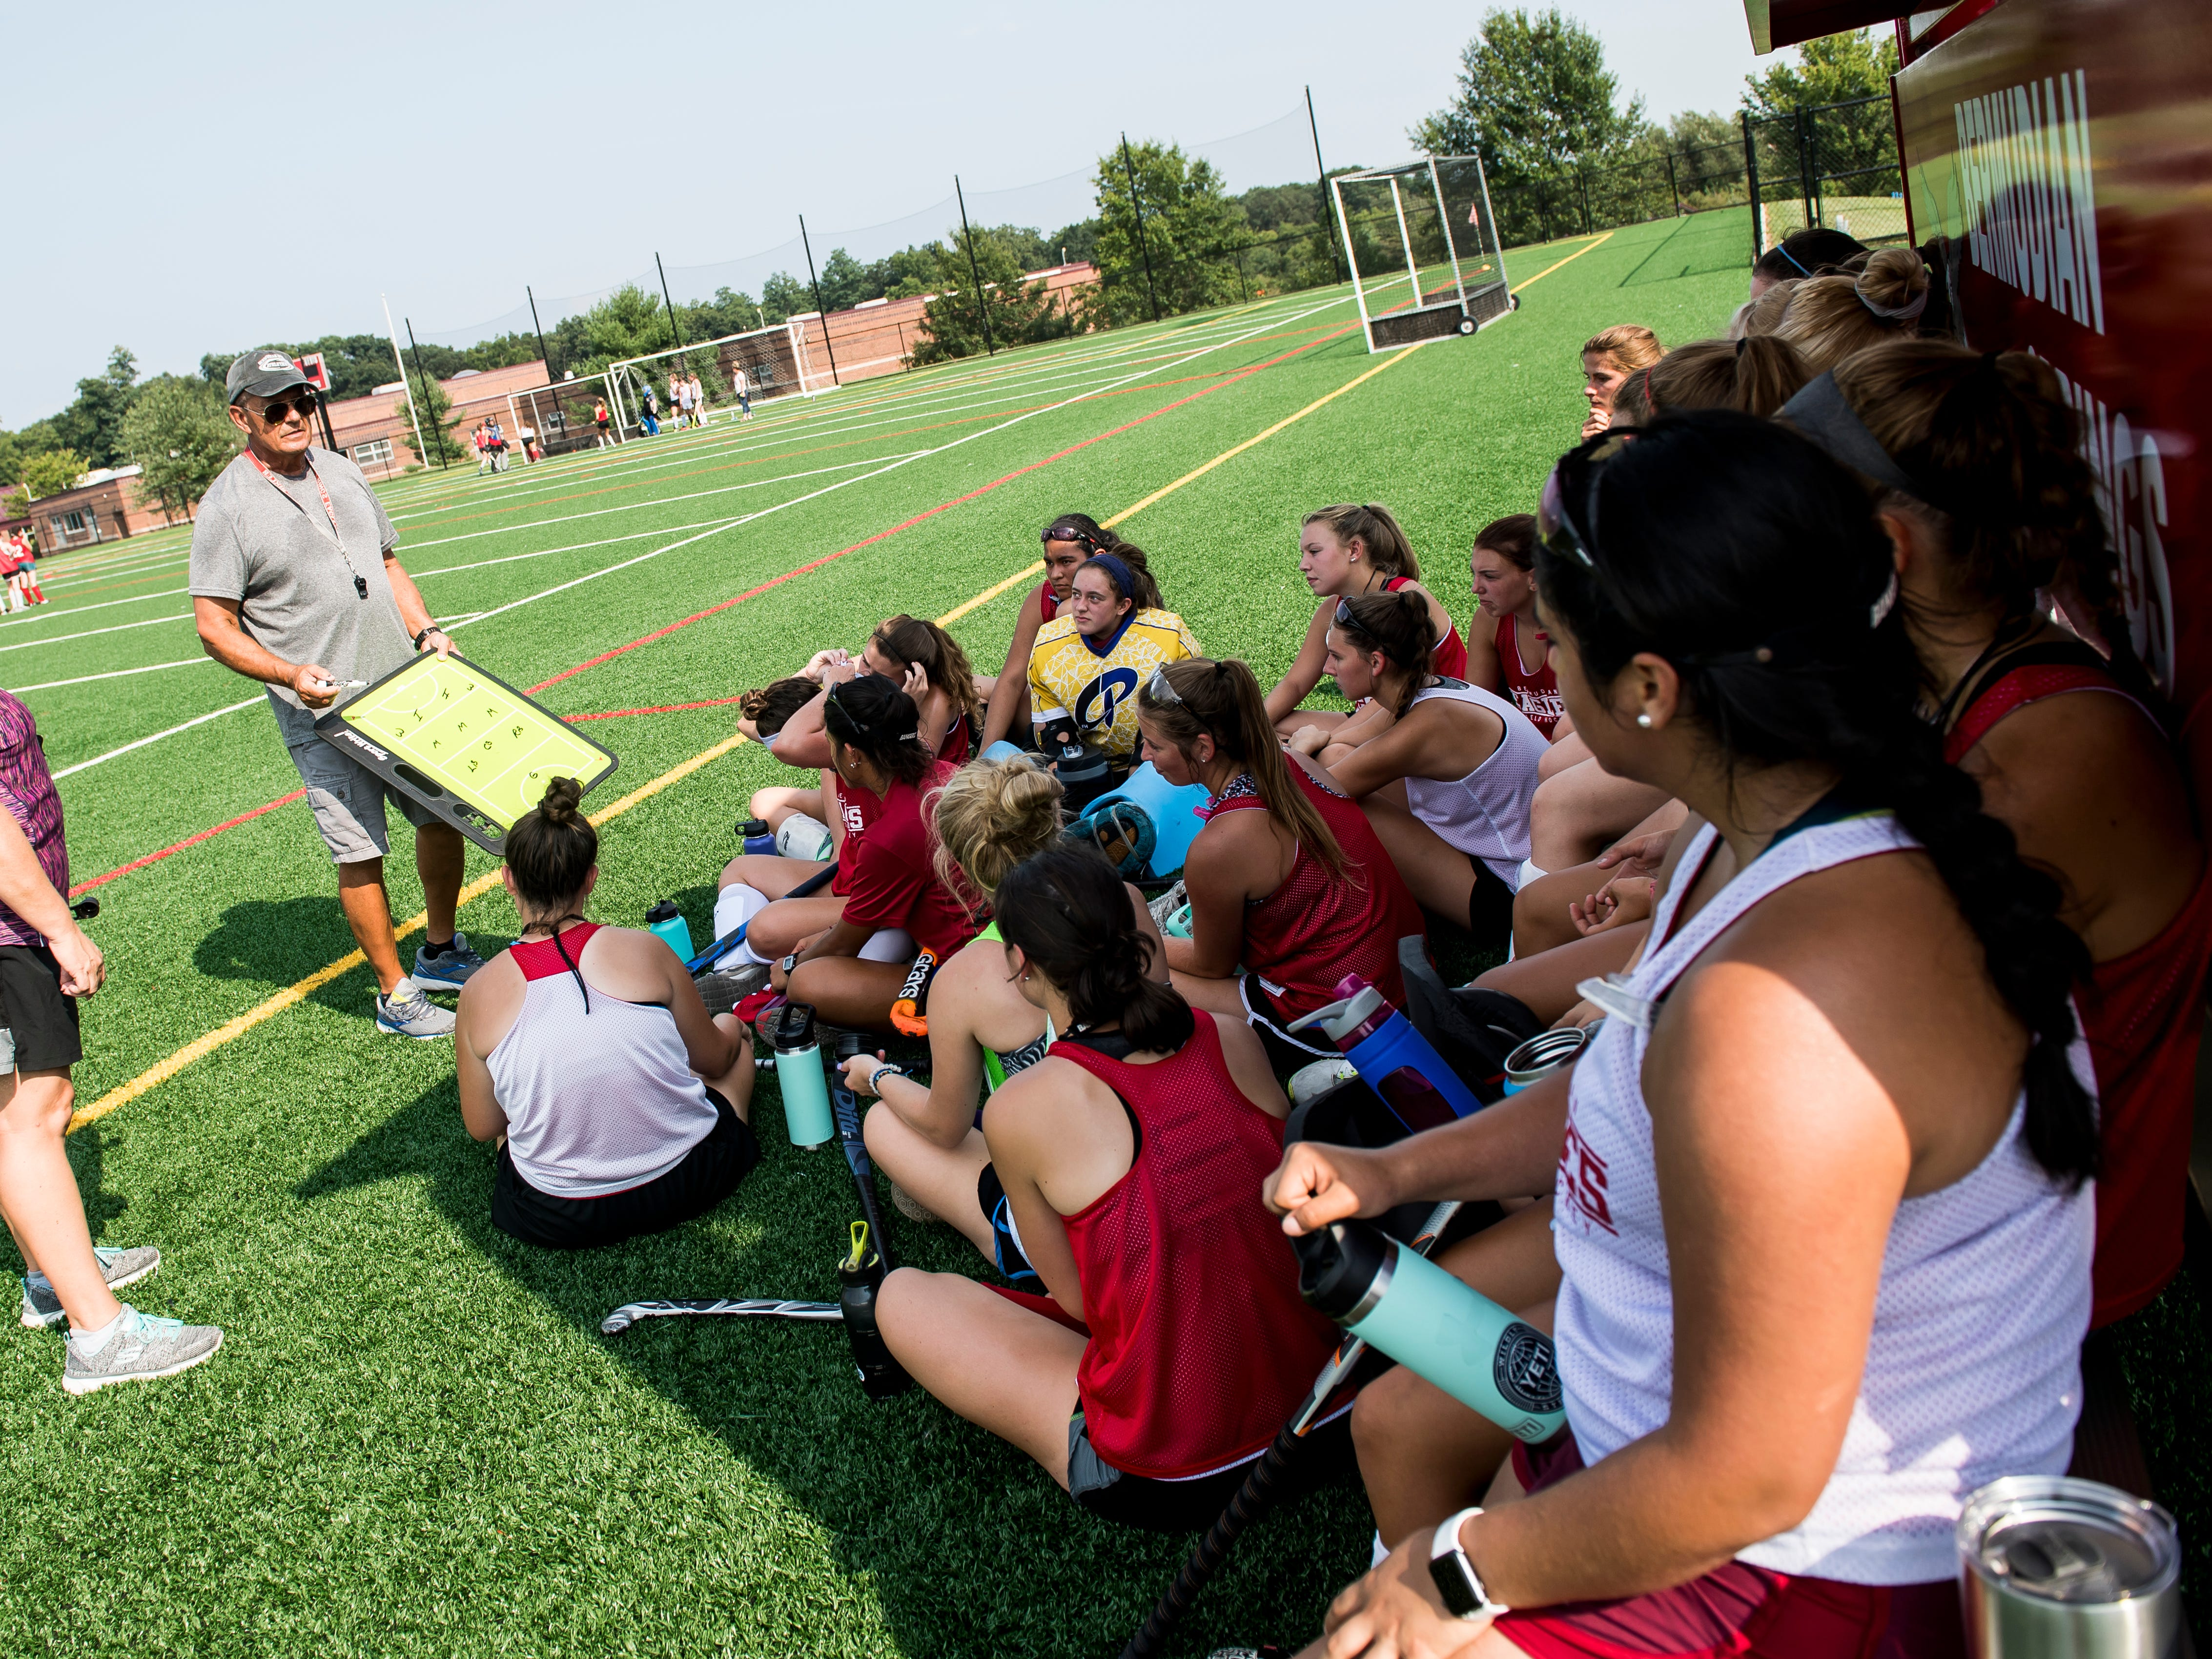 Bermudian Springs field hockey players listen to head coach Neil Bixler during practice on Thursday, August 16, 2018.